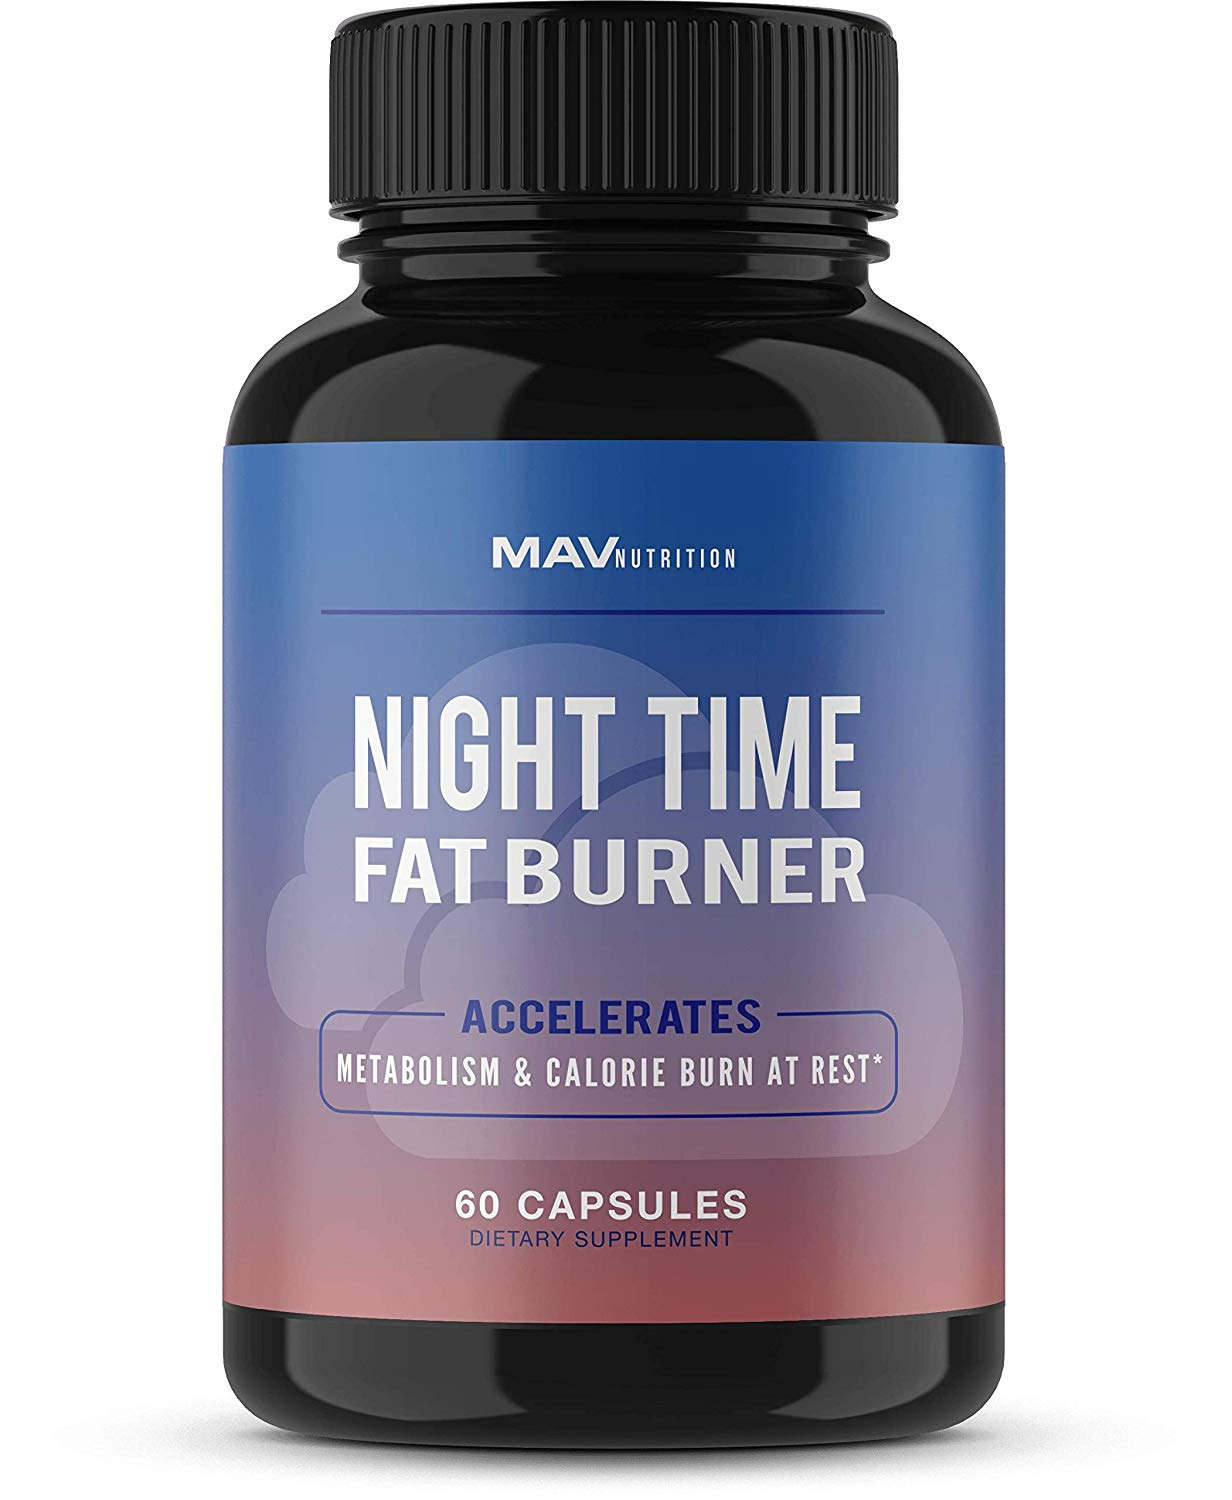 3X Triple Action Burner night time fat burner weight loss pills formulated to burn fat and aid in  suppressing appetite, supports a restful night sleep while increasing